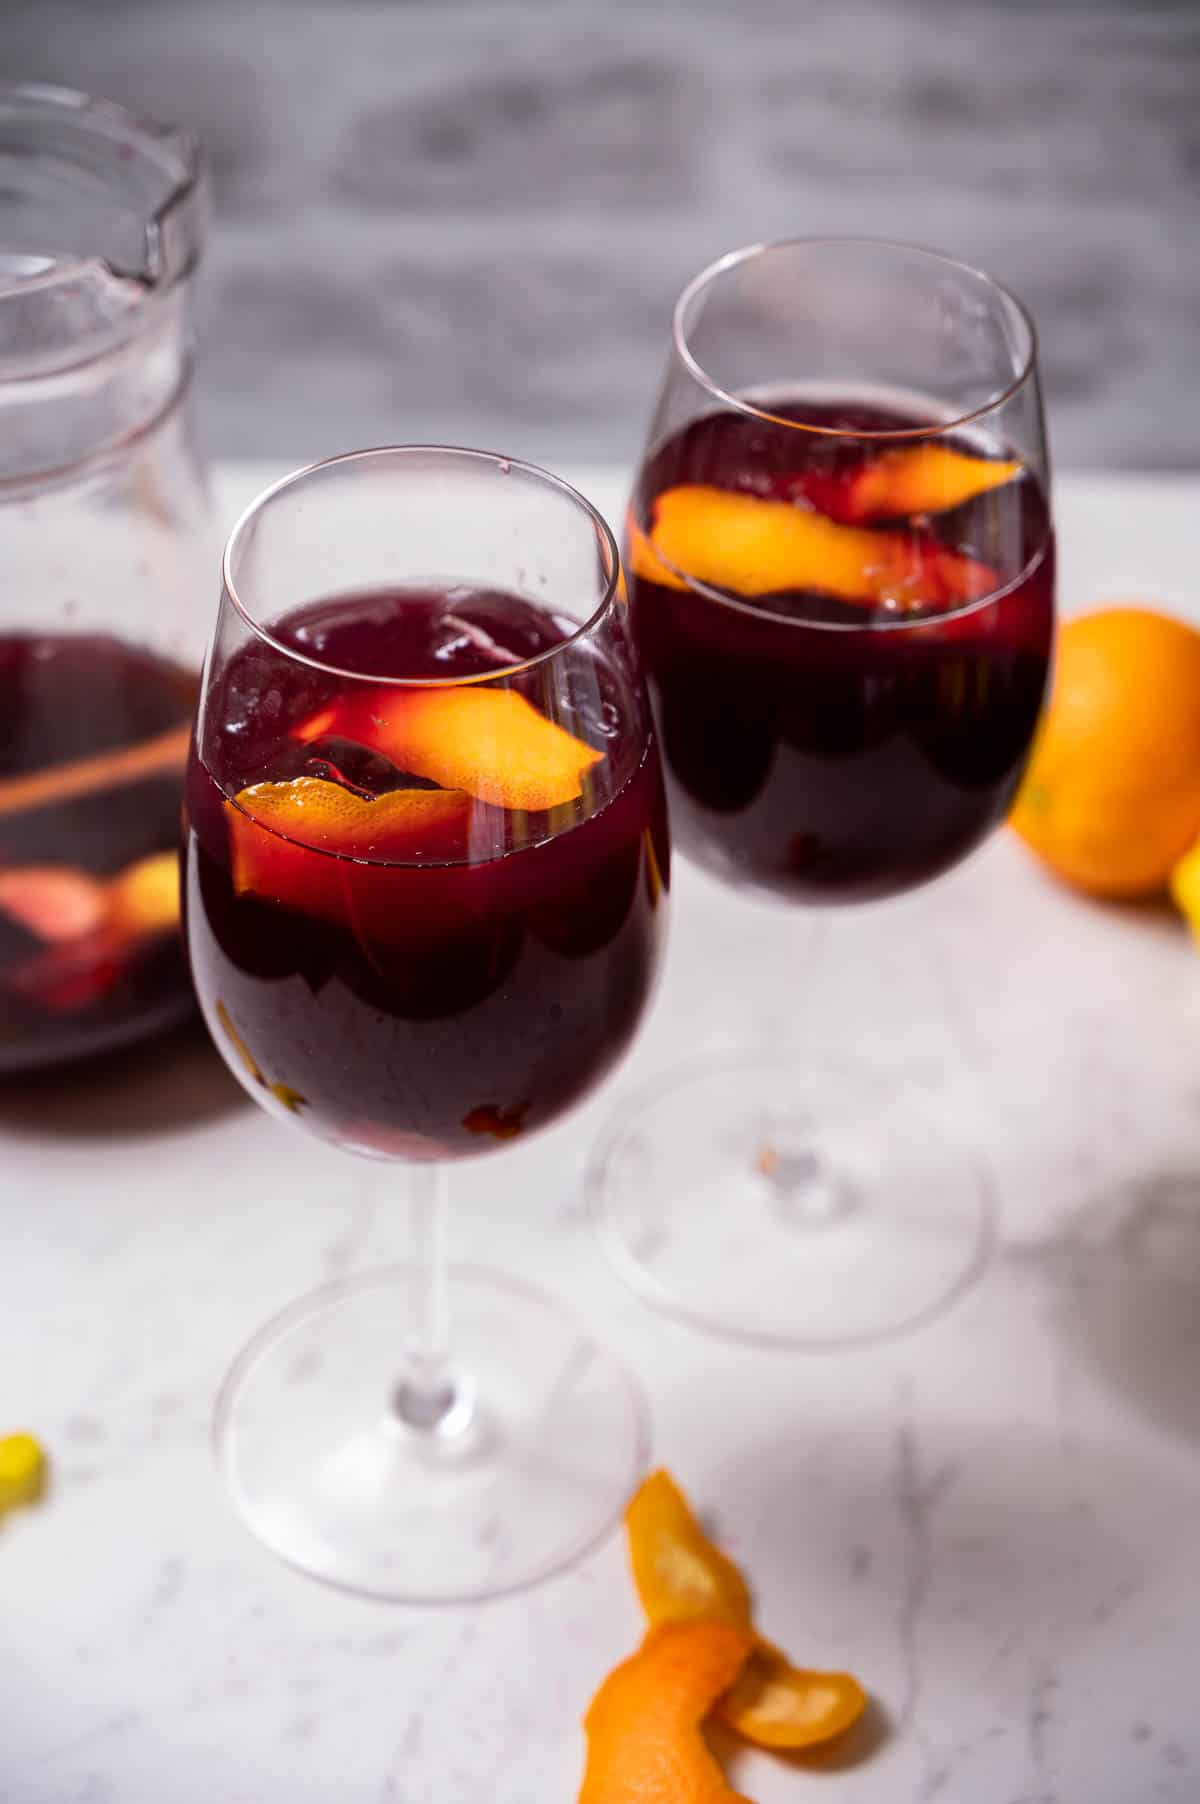 Two glasses of sangria garnished with citrus